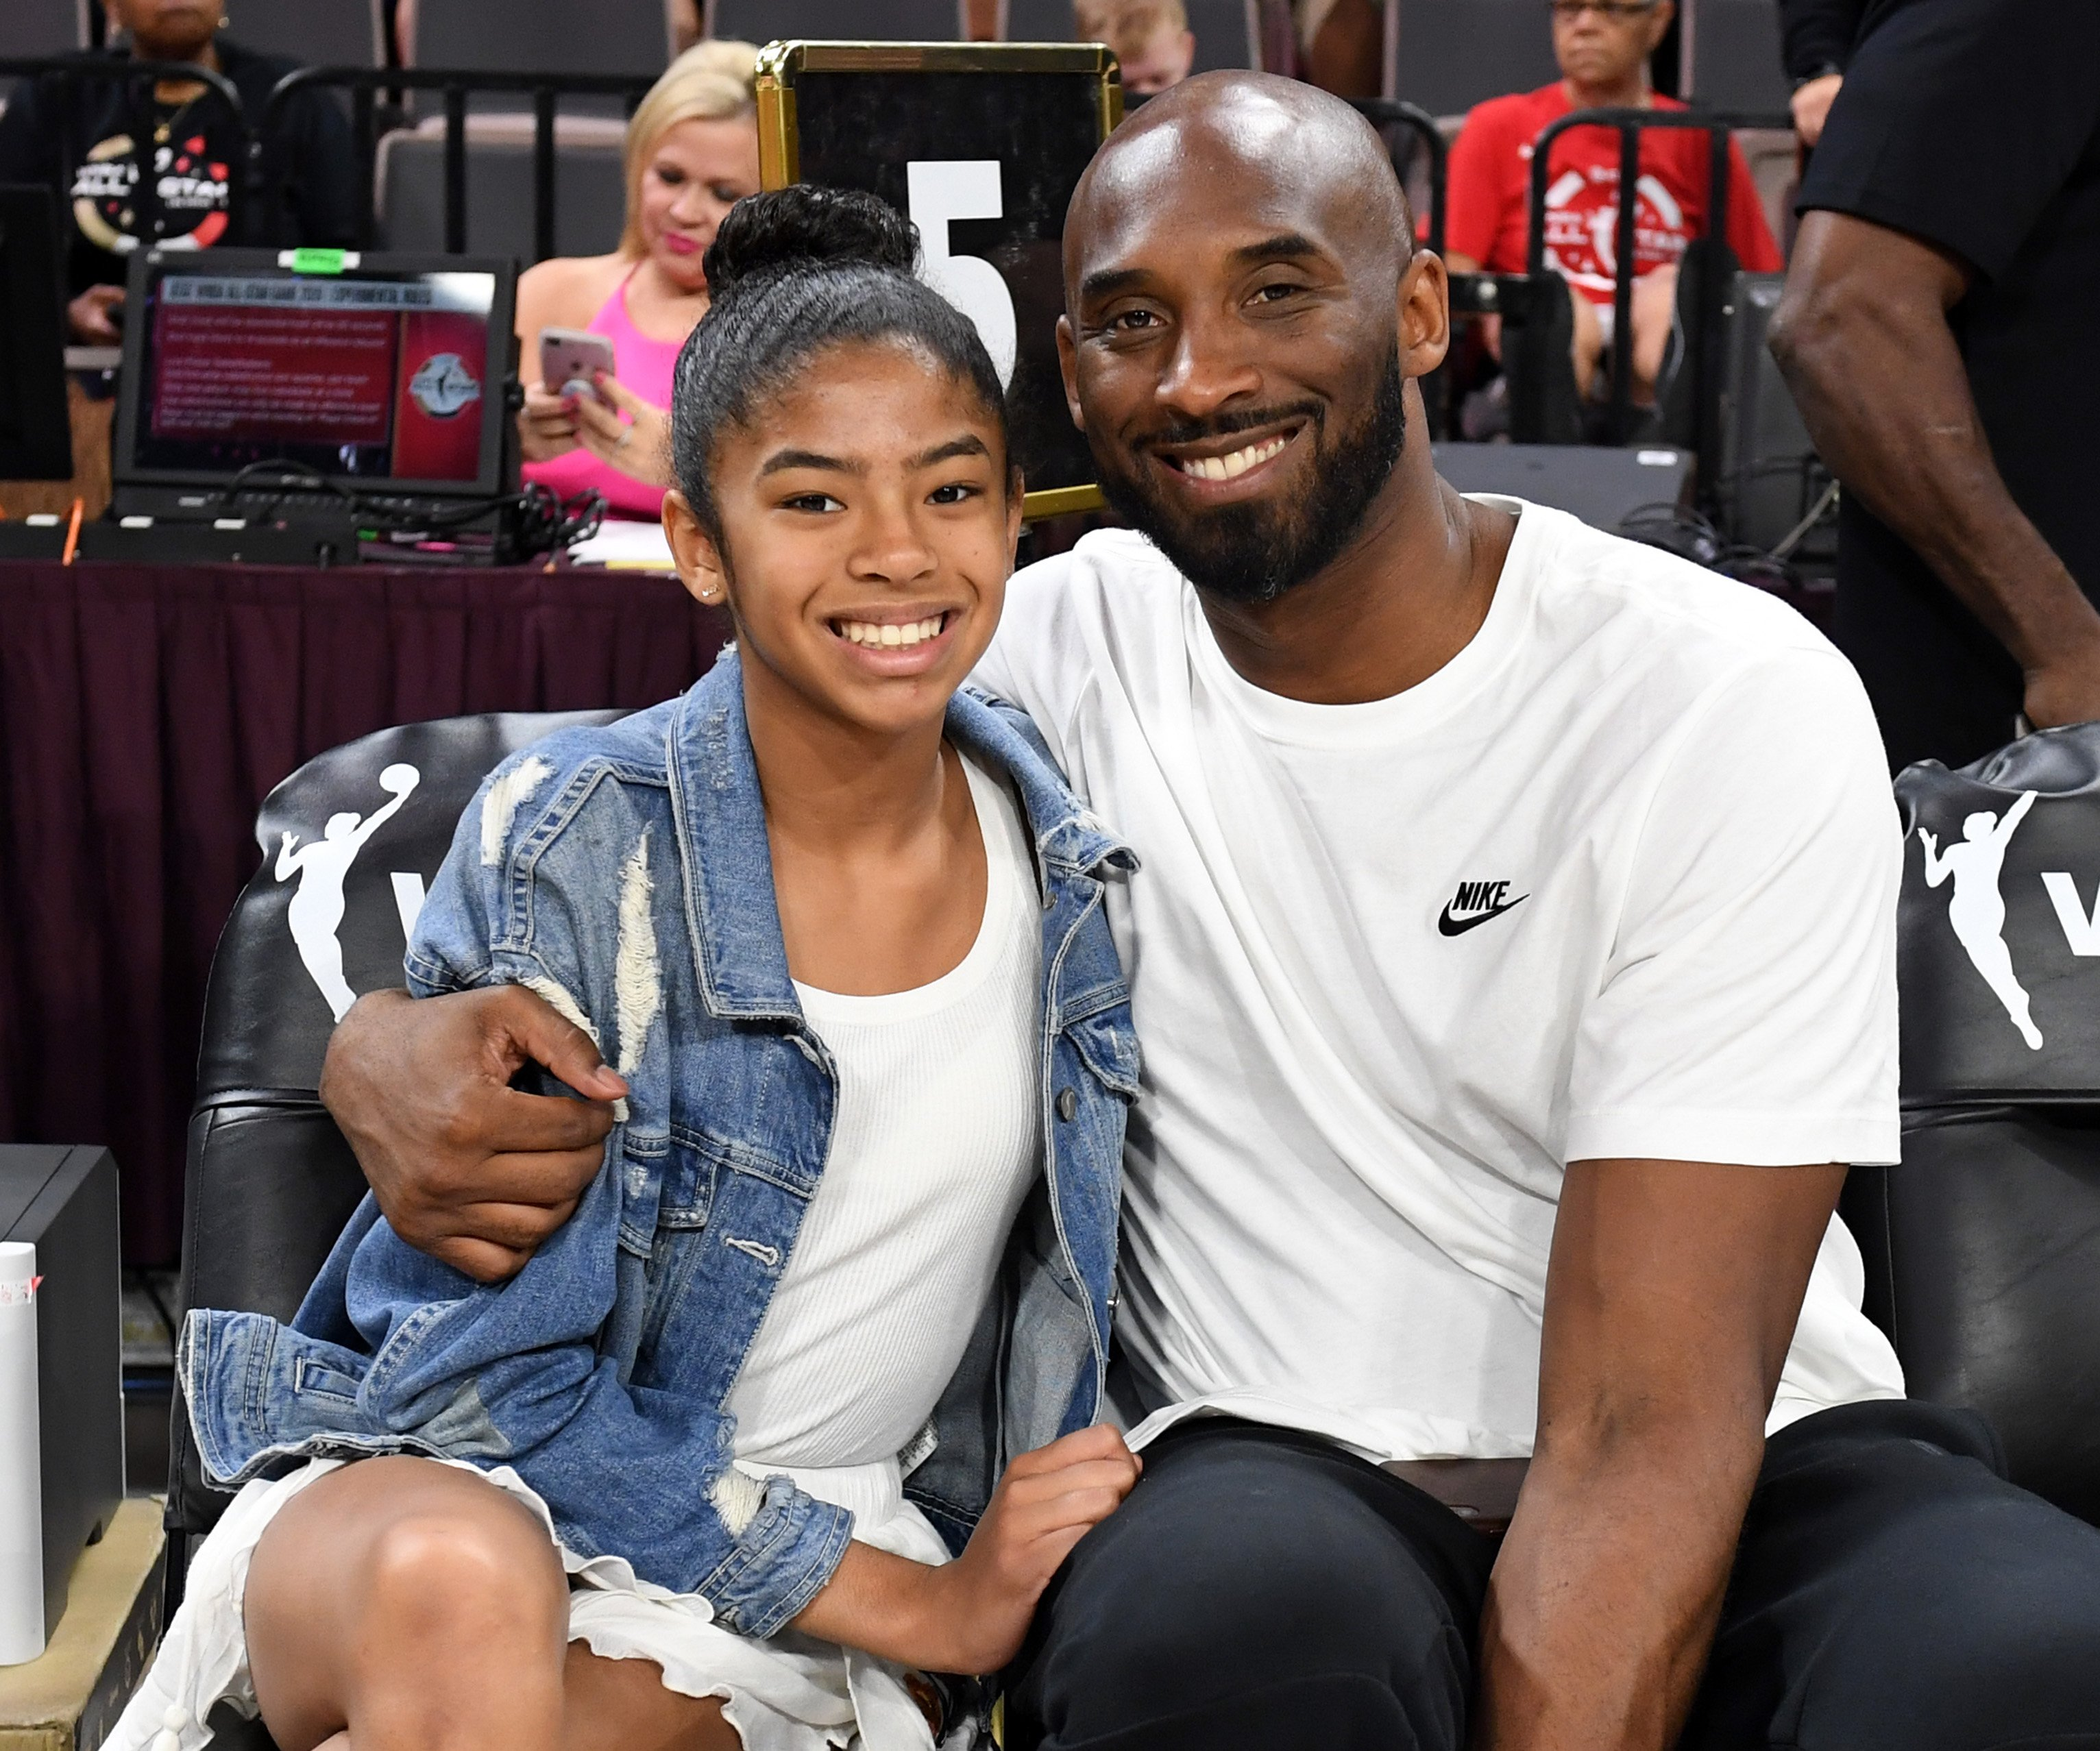 Gianna and Kobe Bryant attending the WNBA All-Star Game in July 2019. | Photo: Getty Images